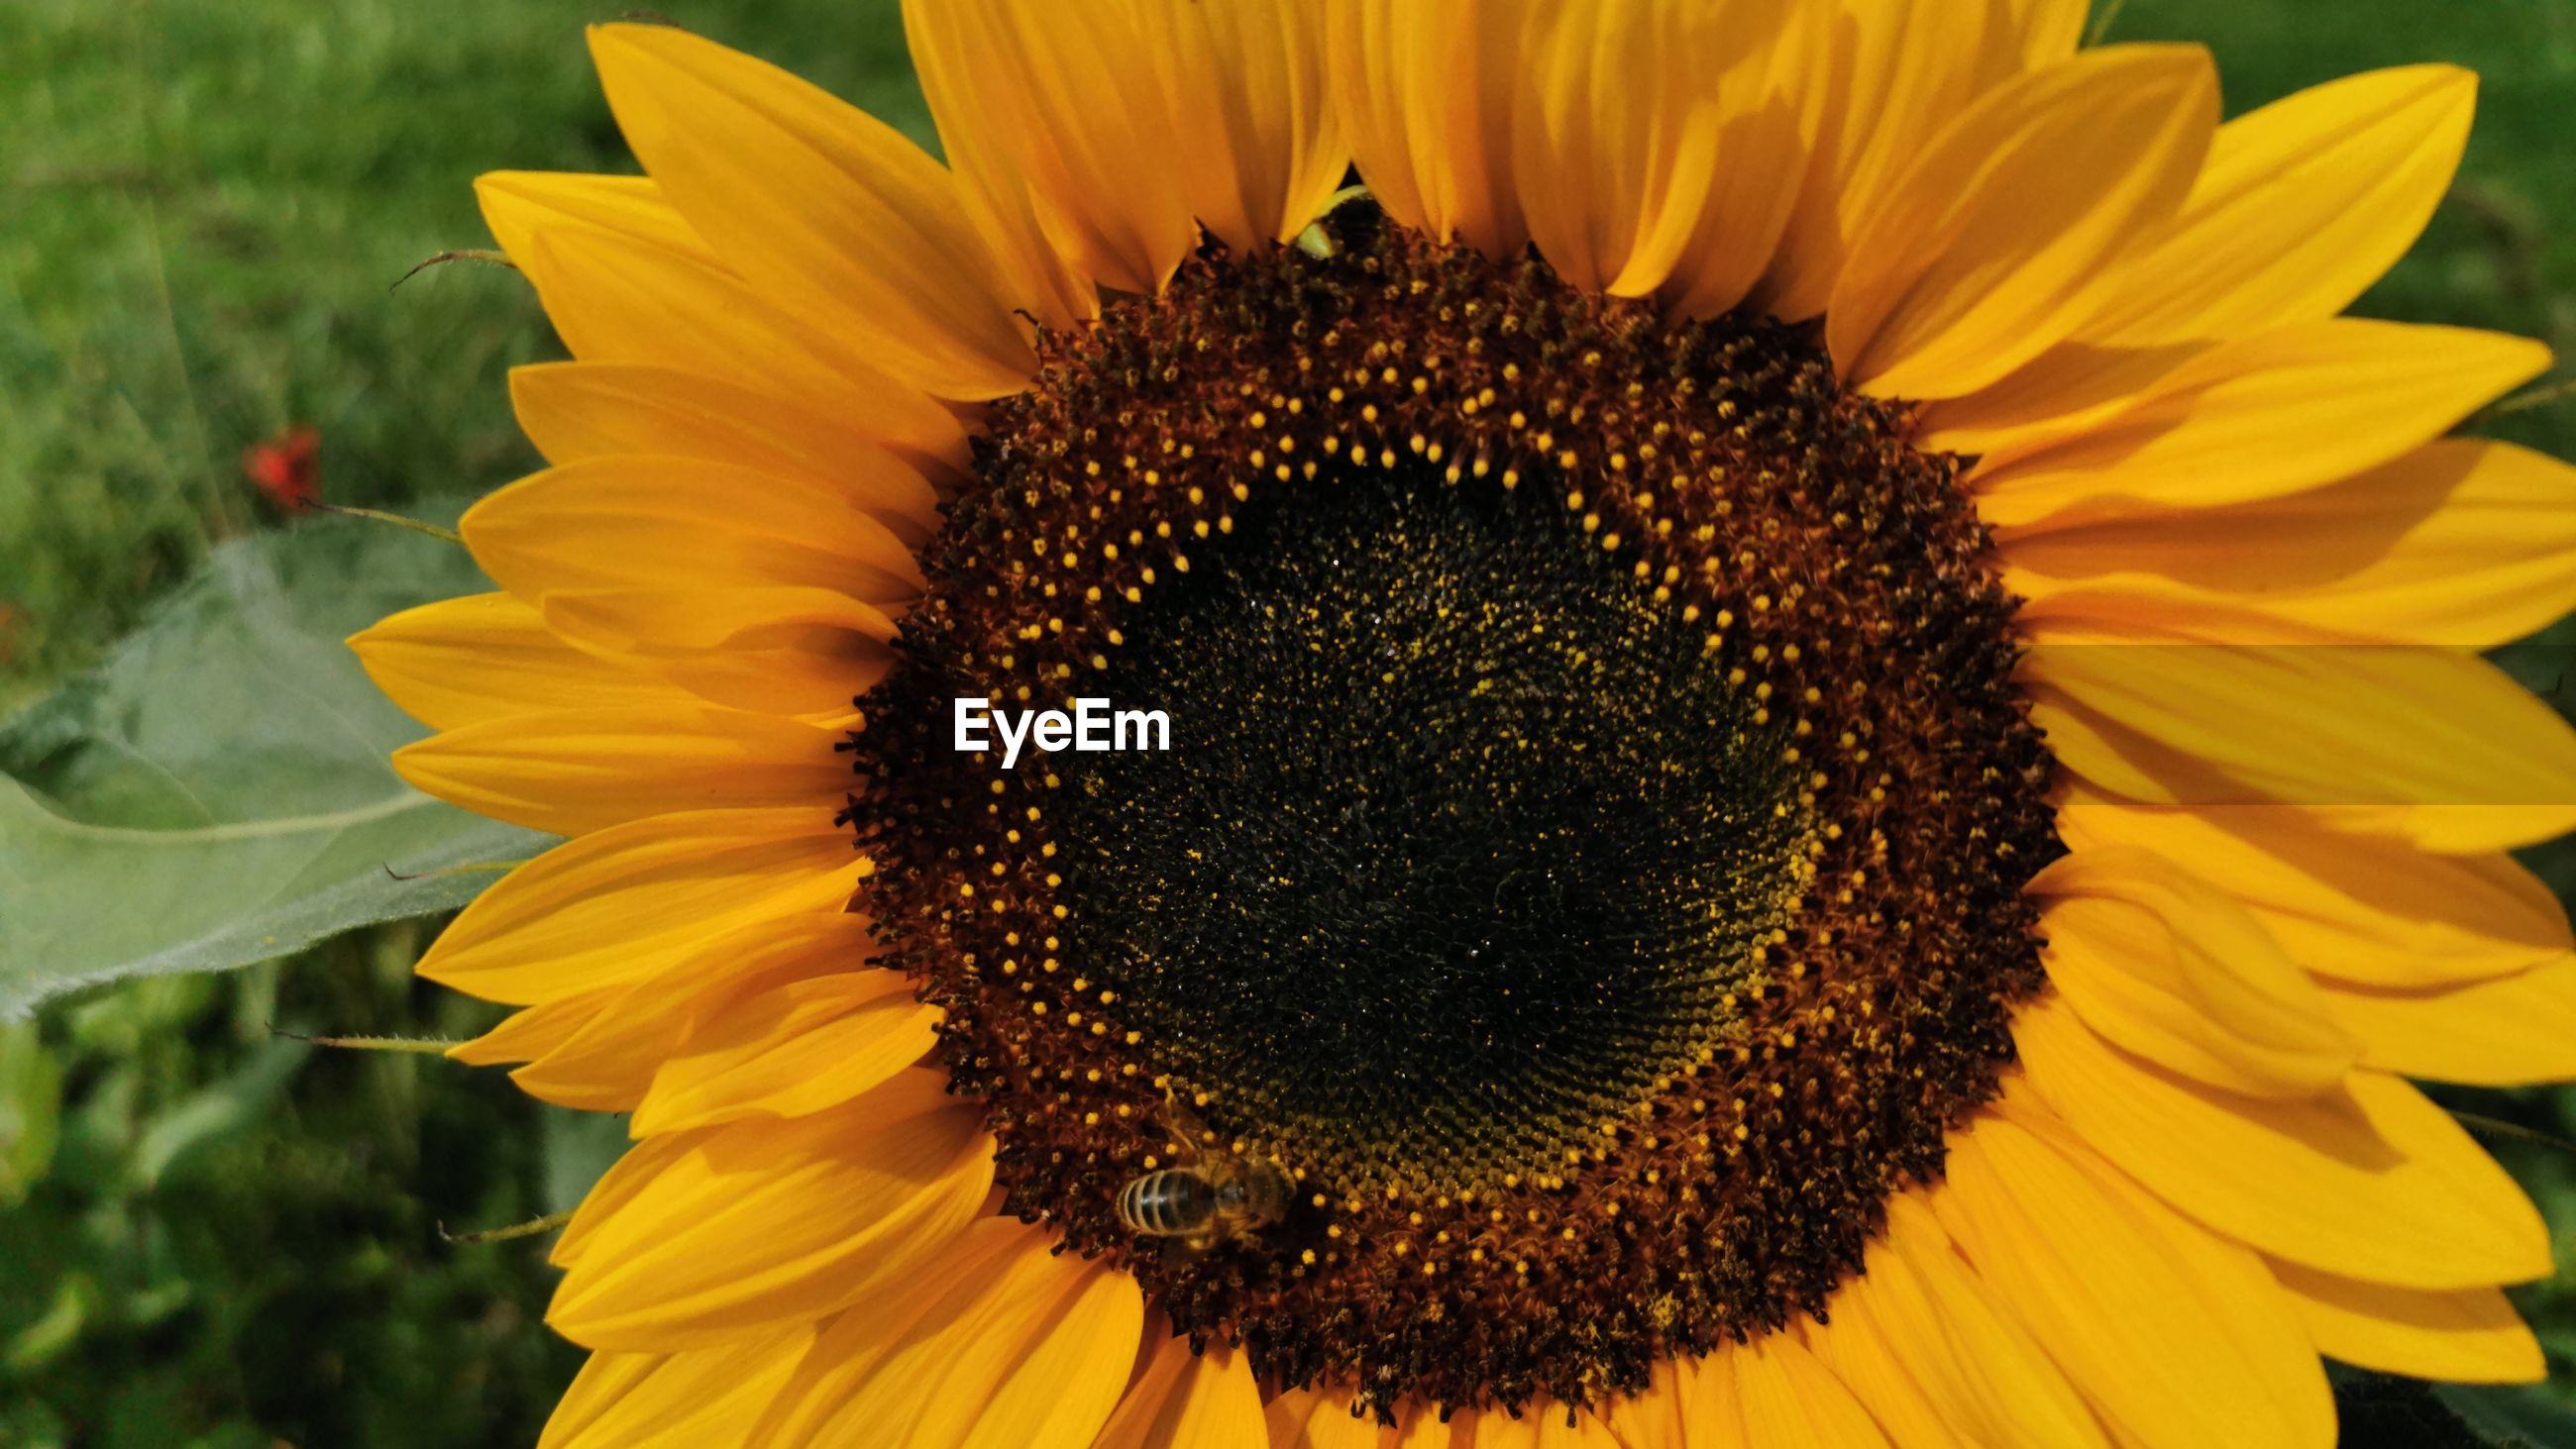 CLOSE-UP OF YELLOW SUNFLOWER ON FLOWER